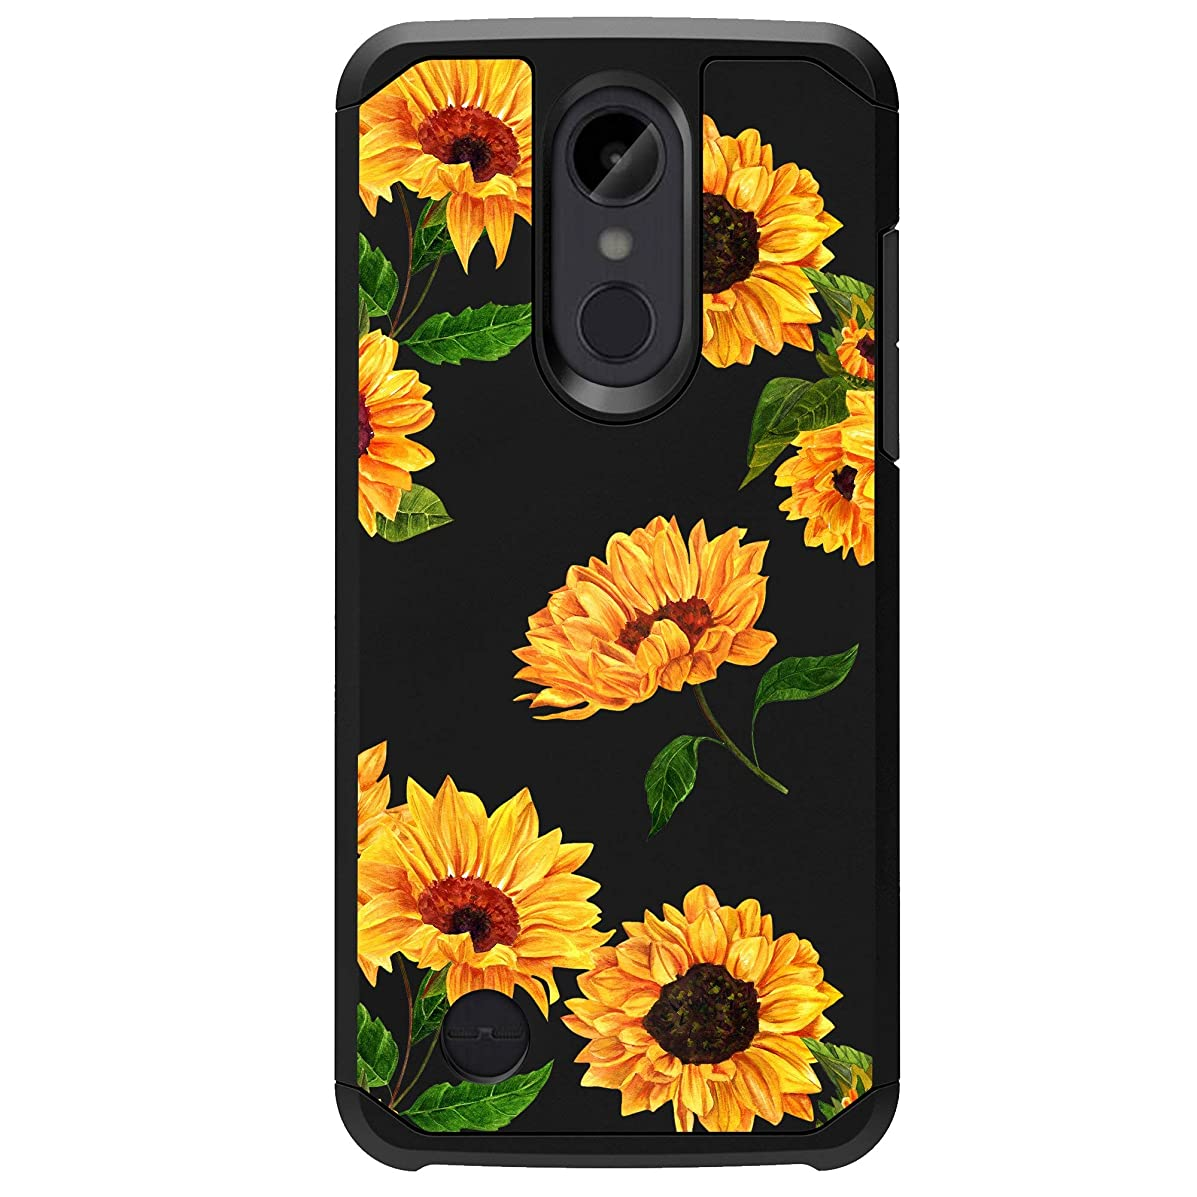 MINITURTLE Case Compatible w/LG Rebel 2, LG Phoenix 3, LG Fortune, LG Risio 2 [Floral Print Series][Cute Hybrid Case for Girls][Floral Print][2-Part Silicone & Shell Case] - Sunflowers